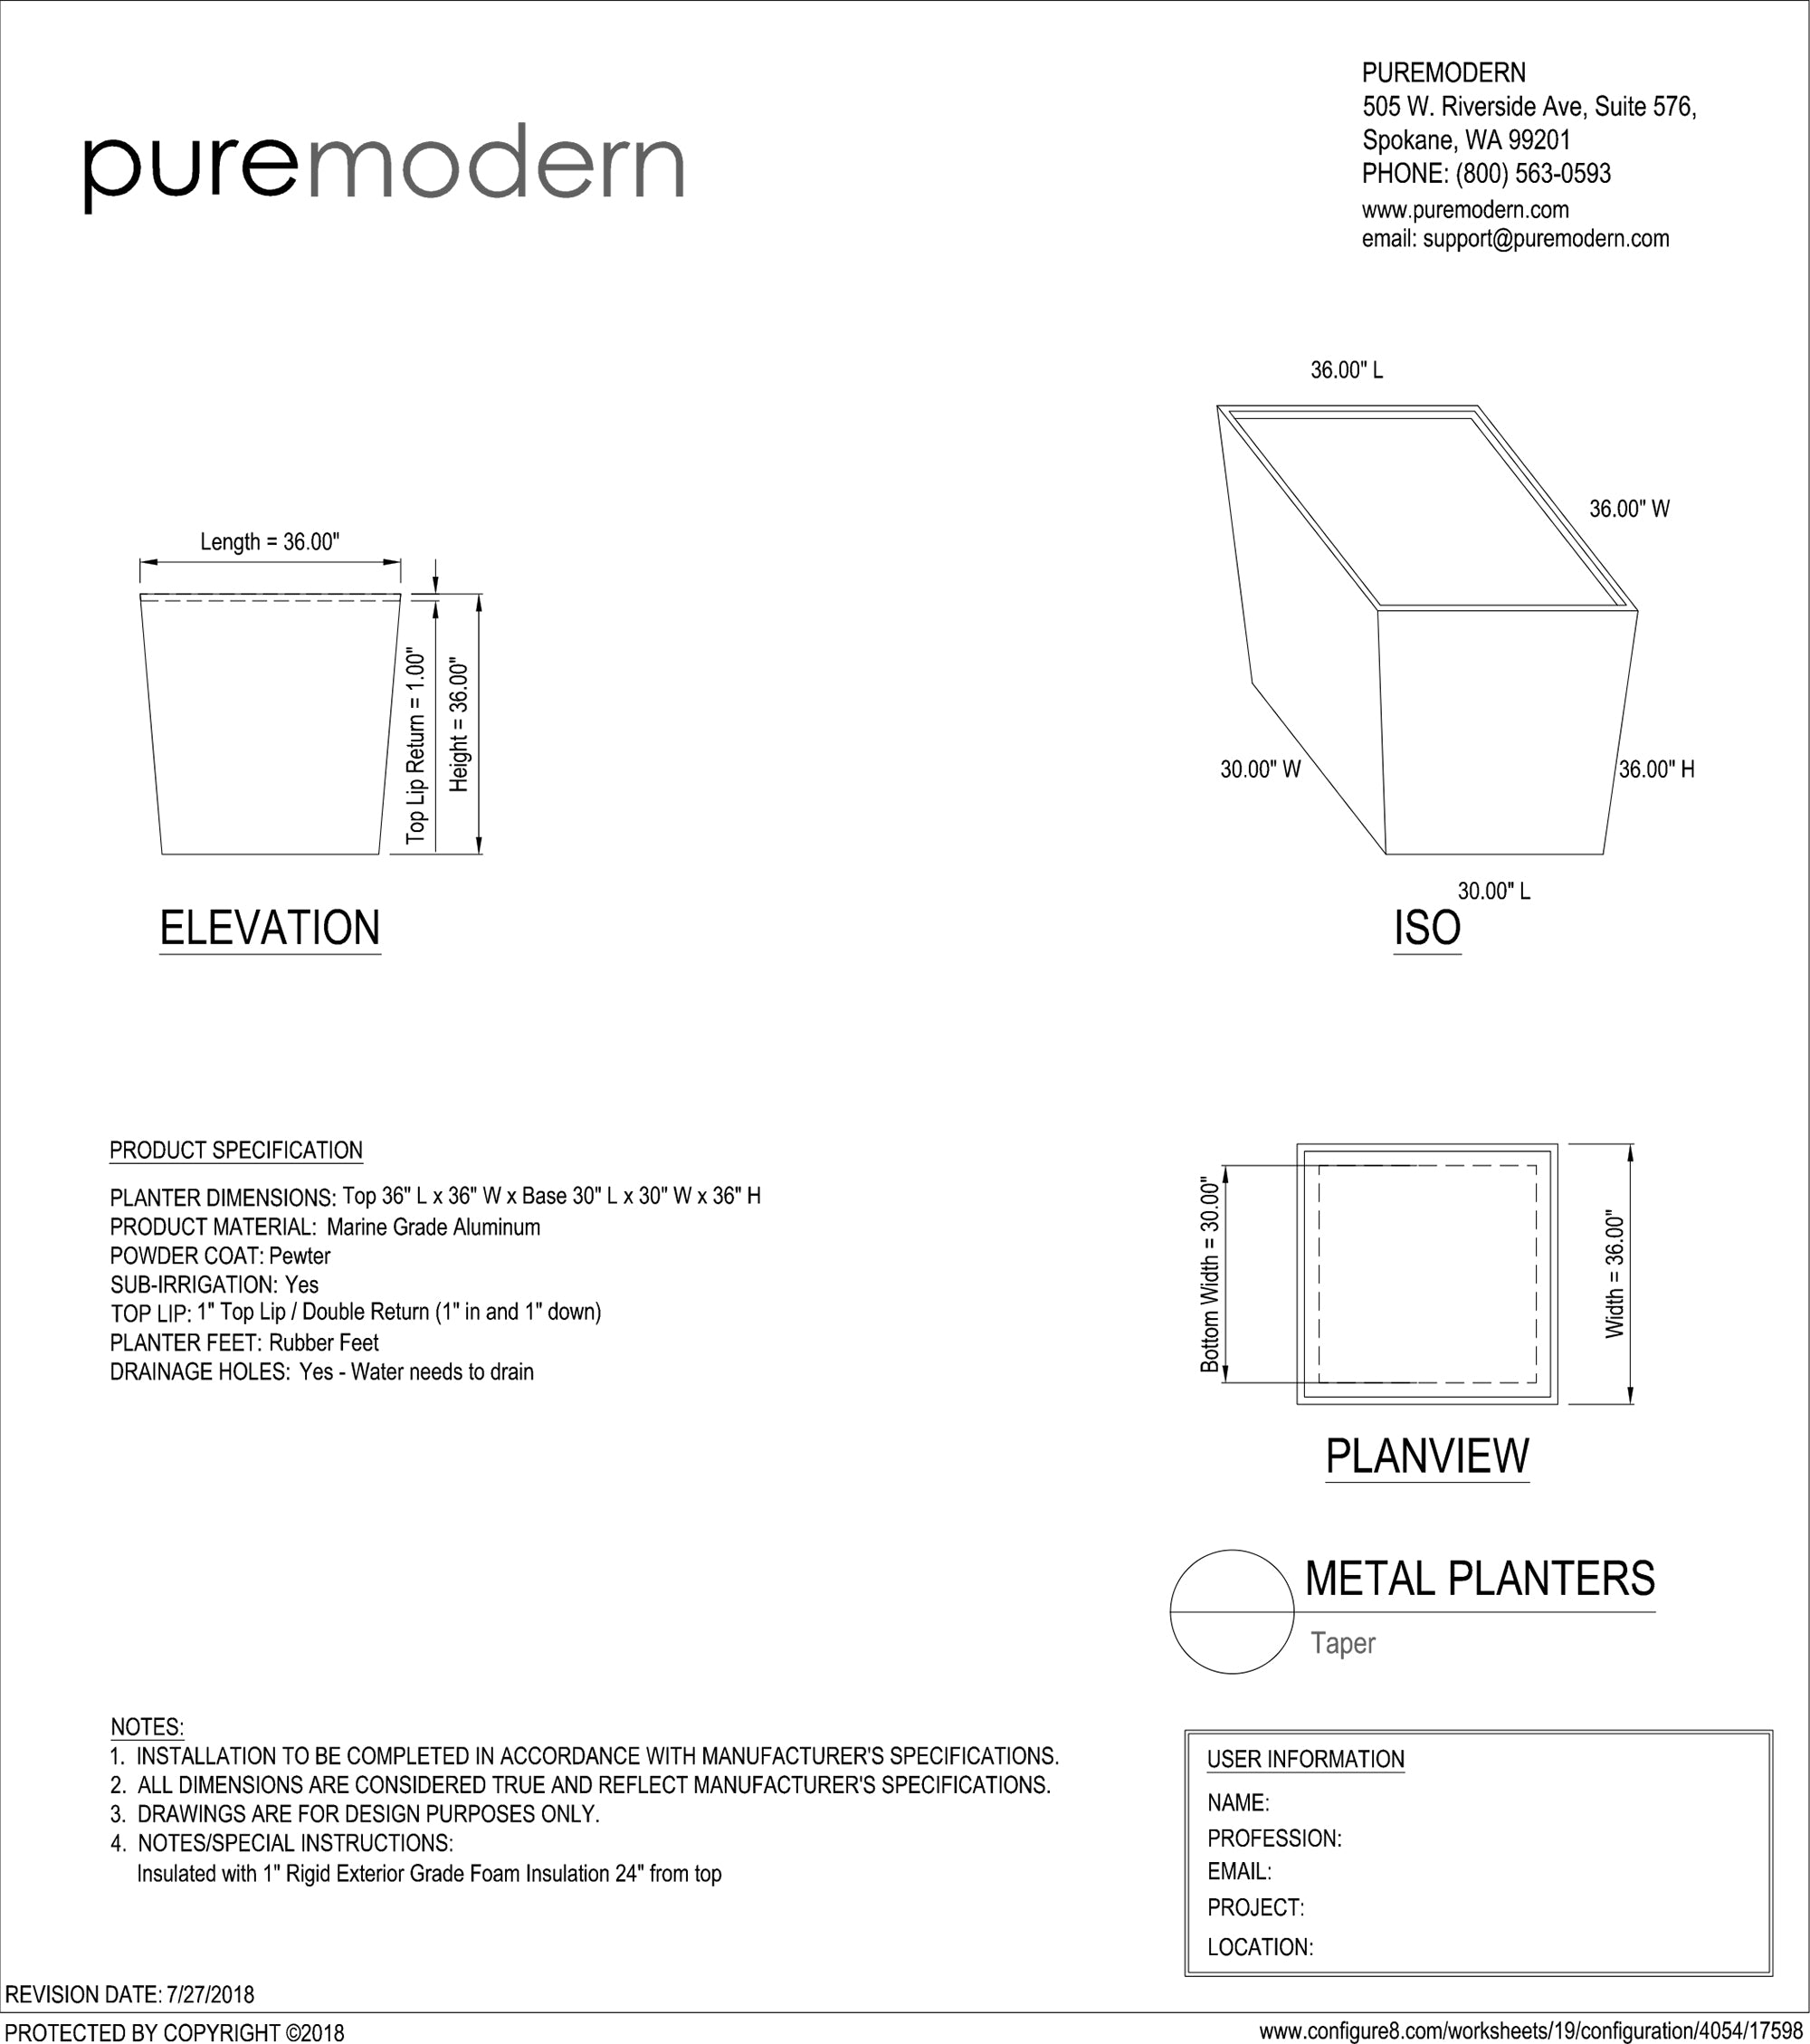 AutoCAD files for personalized planters